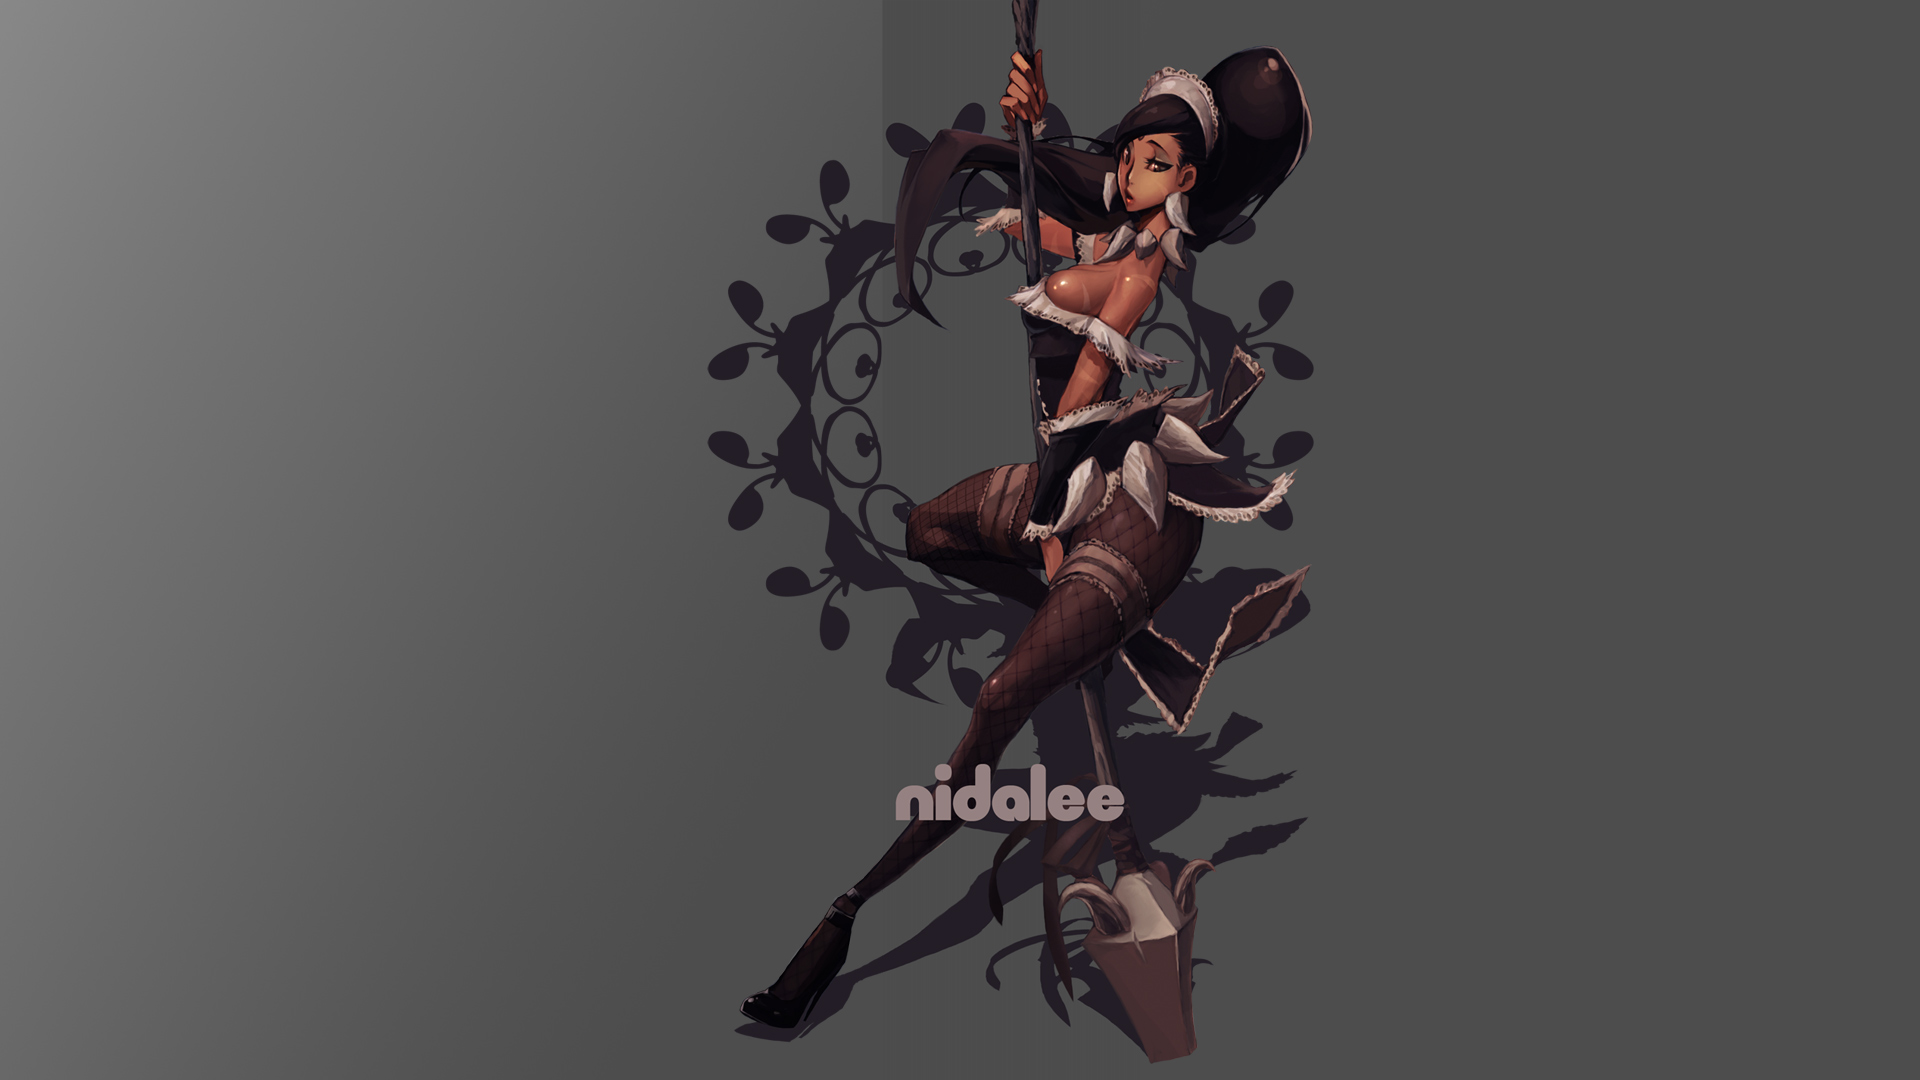 nidalee maid skin splash sexy girl league of legends hd wallpaper lol 1920x1080